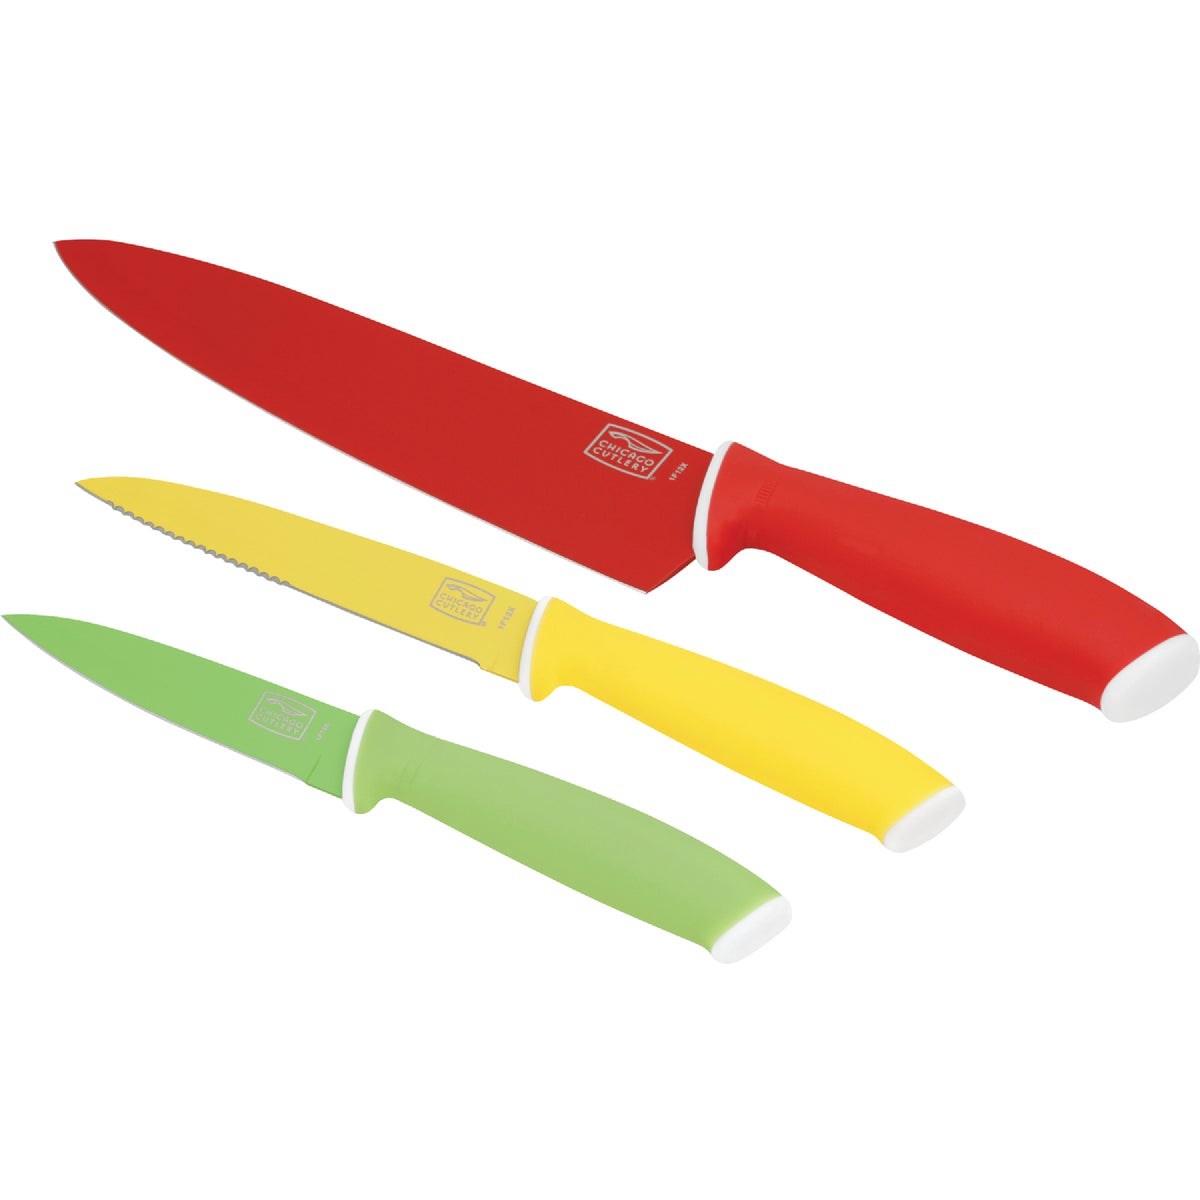 VIVID 3 PC KNIFE SET